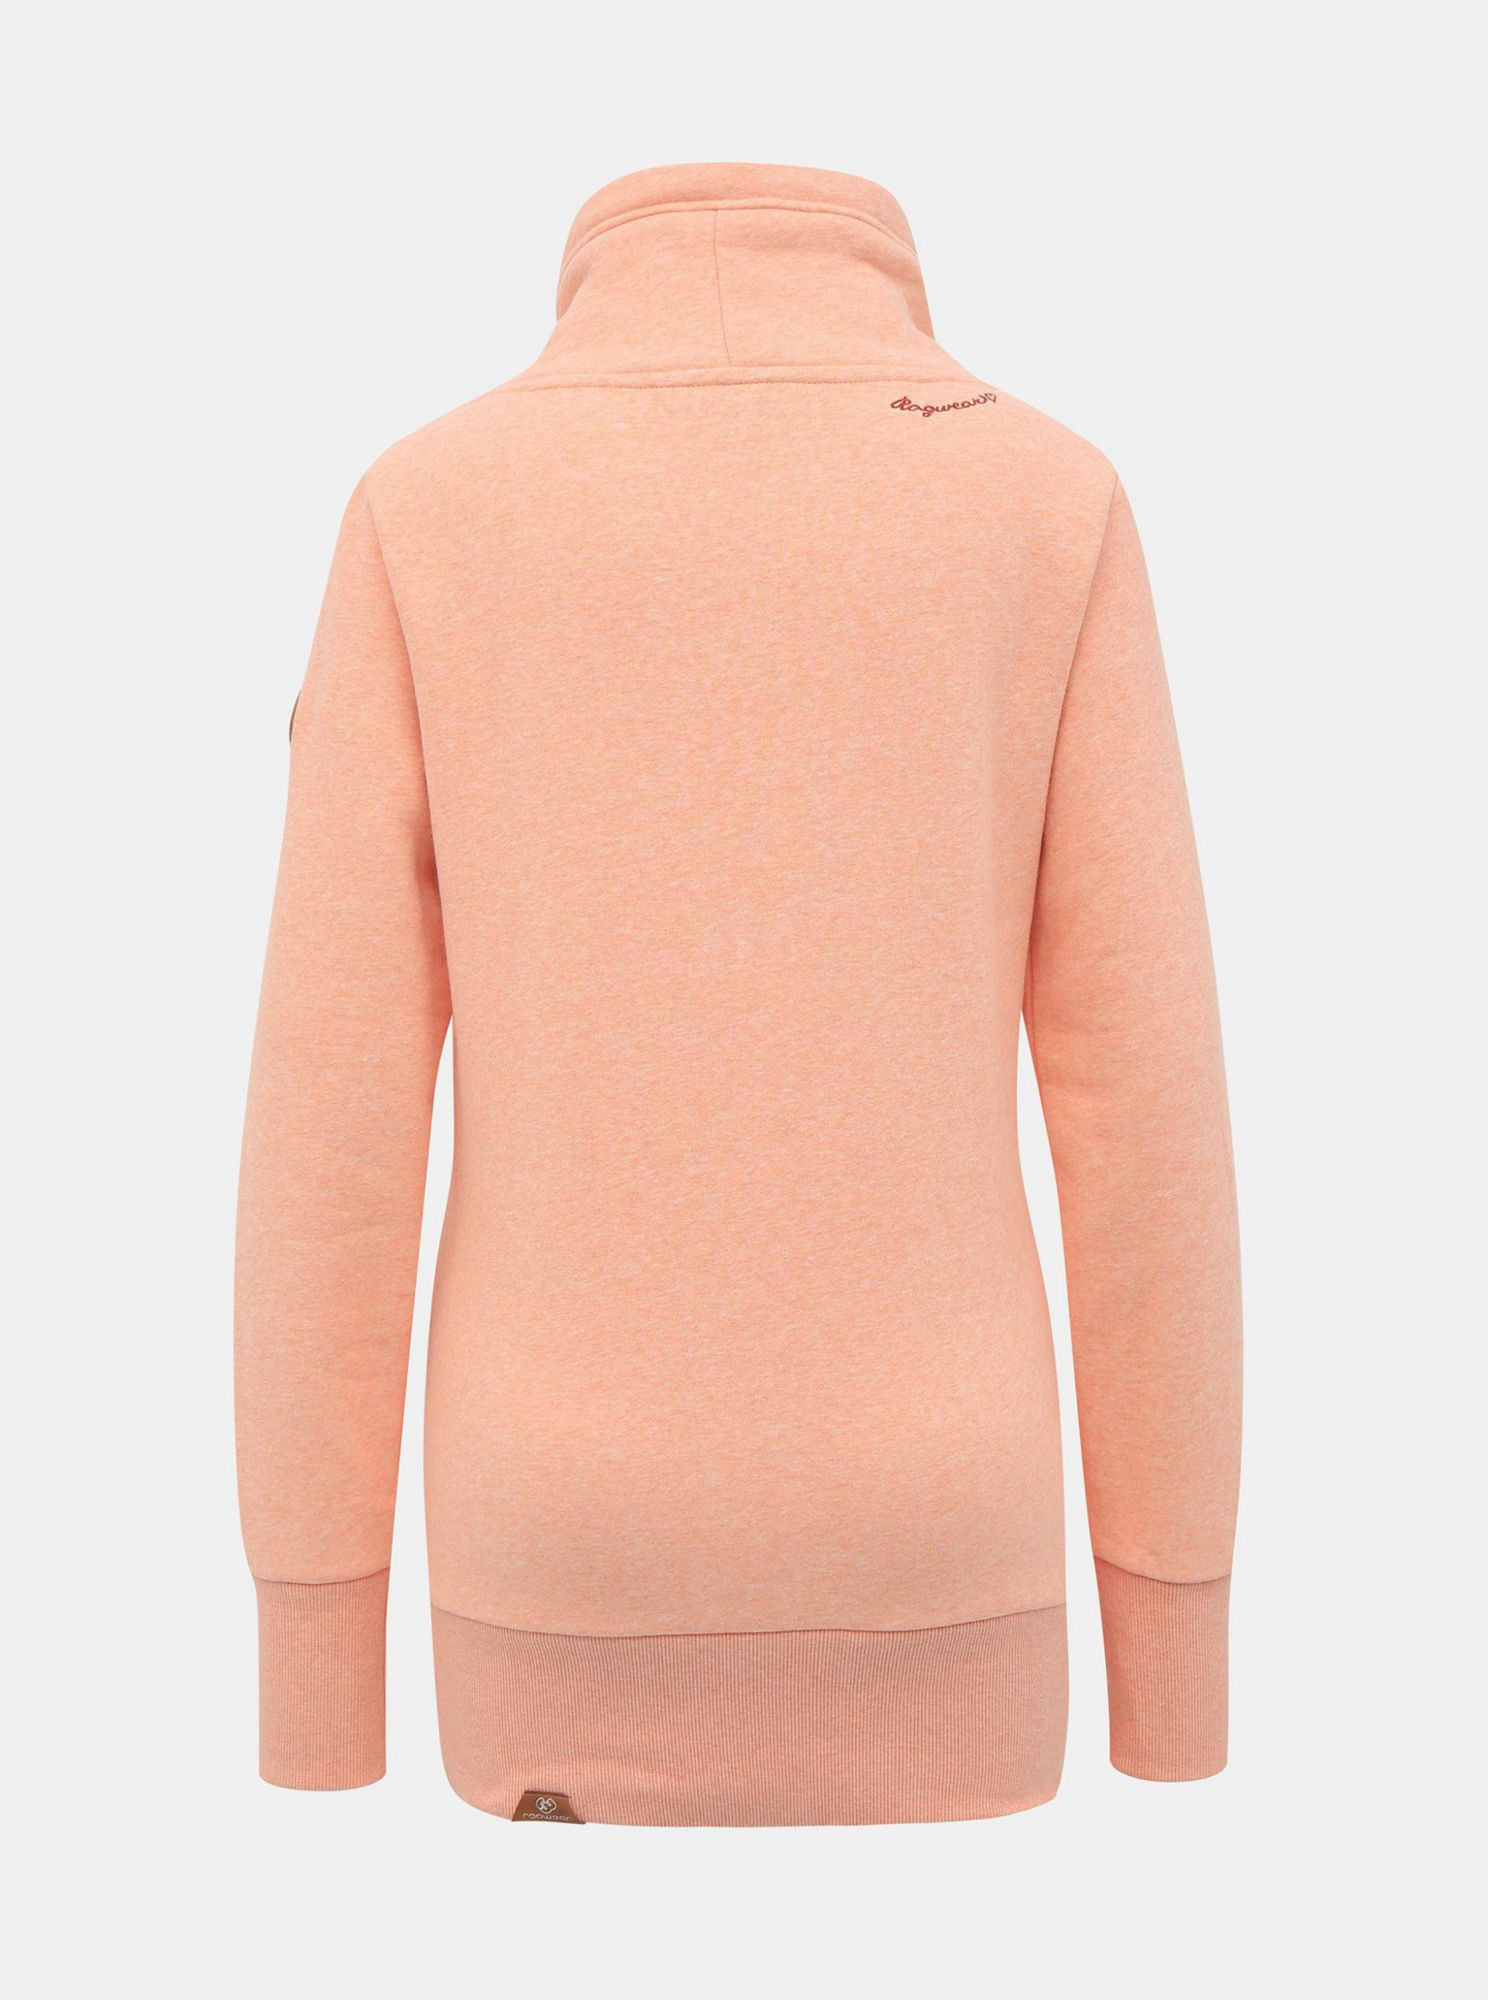 Ragwear orange women´s sweatshirt Neska